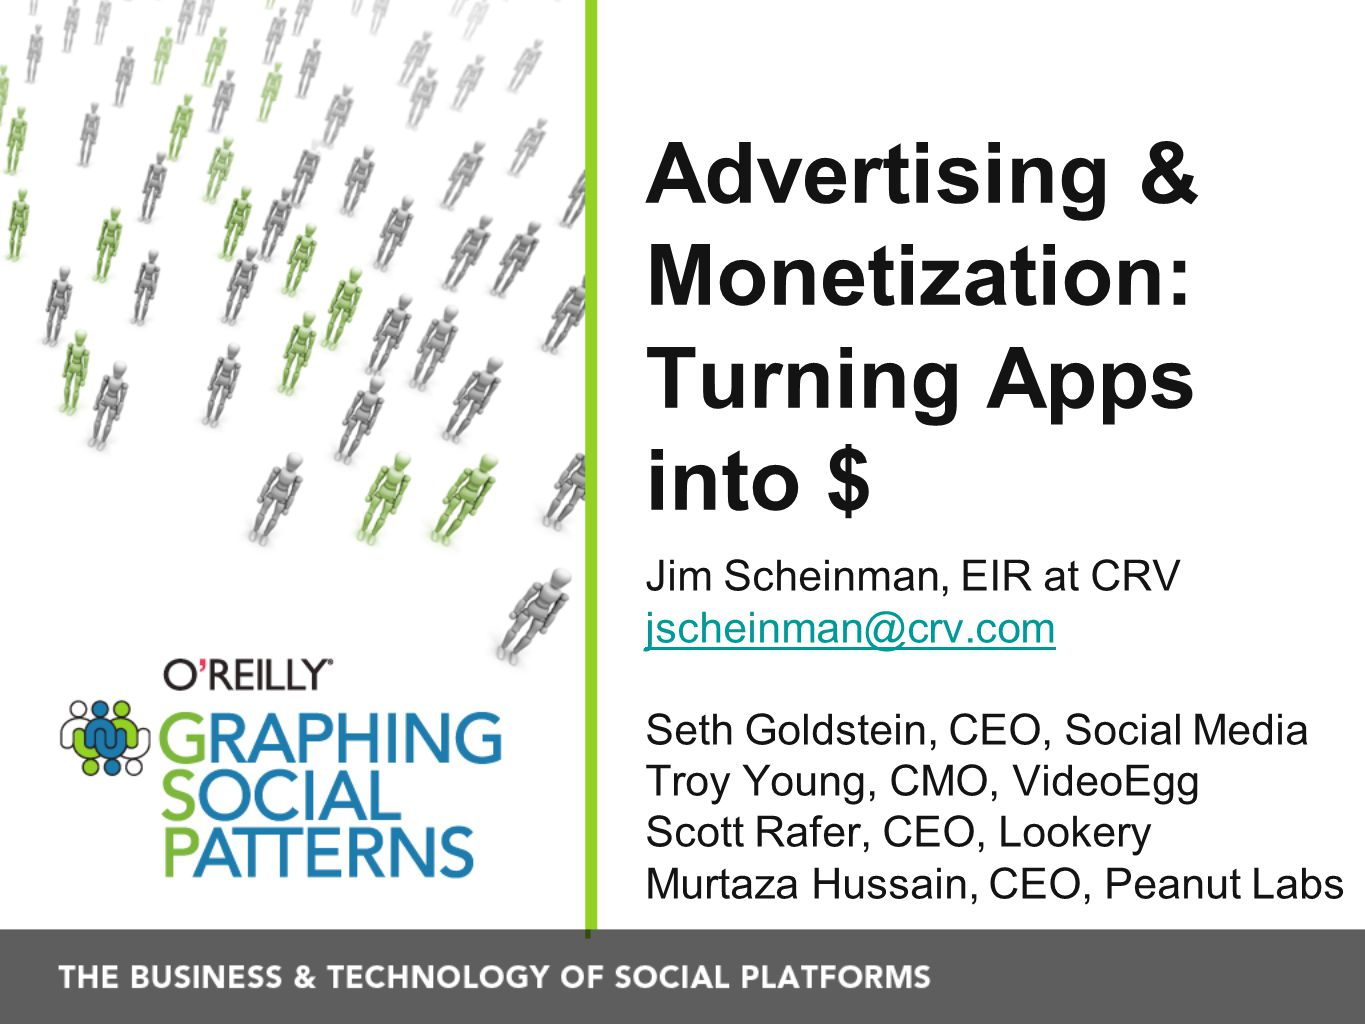 Advertising & Monetization: Turning Apps into $ Jim Scheinman, EIR at CRV jscheinman@crv.com Seth Goldstein, CEO, Social Media Troy Young, CMO, VideoEgg Scott Rafer, CEO, Lookery Murtaza Hussain, CEO, Peanut Labs